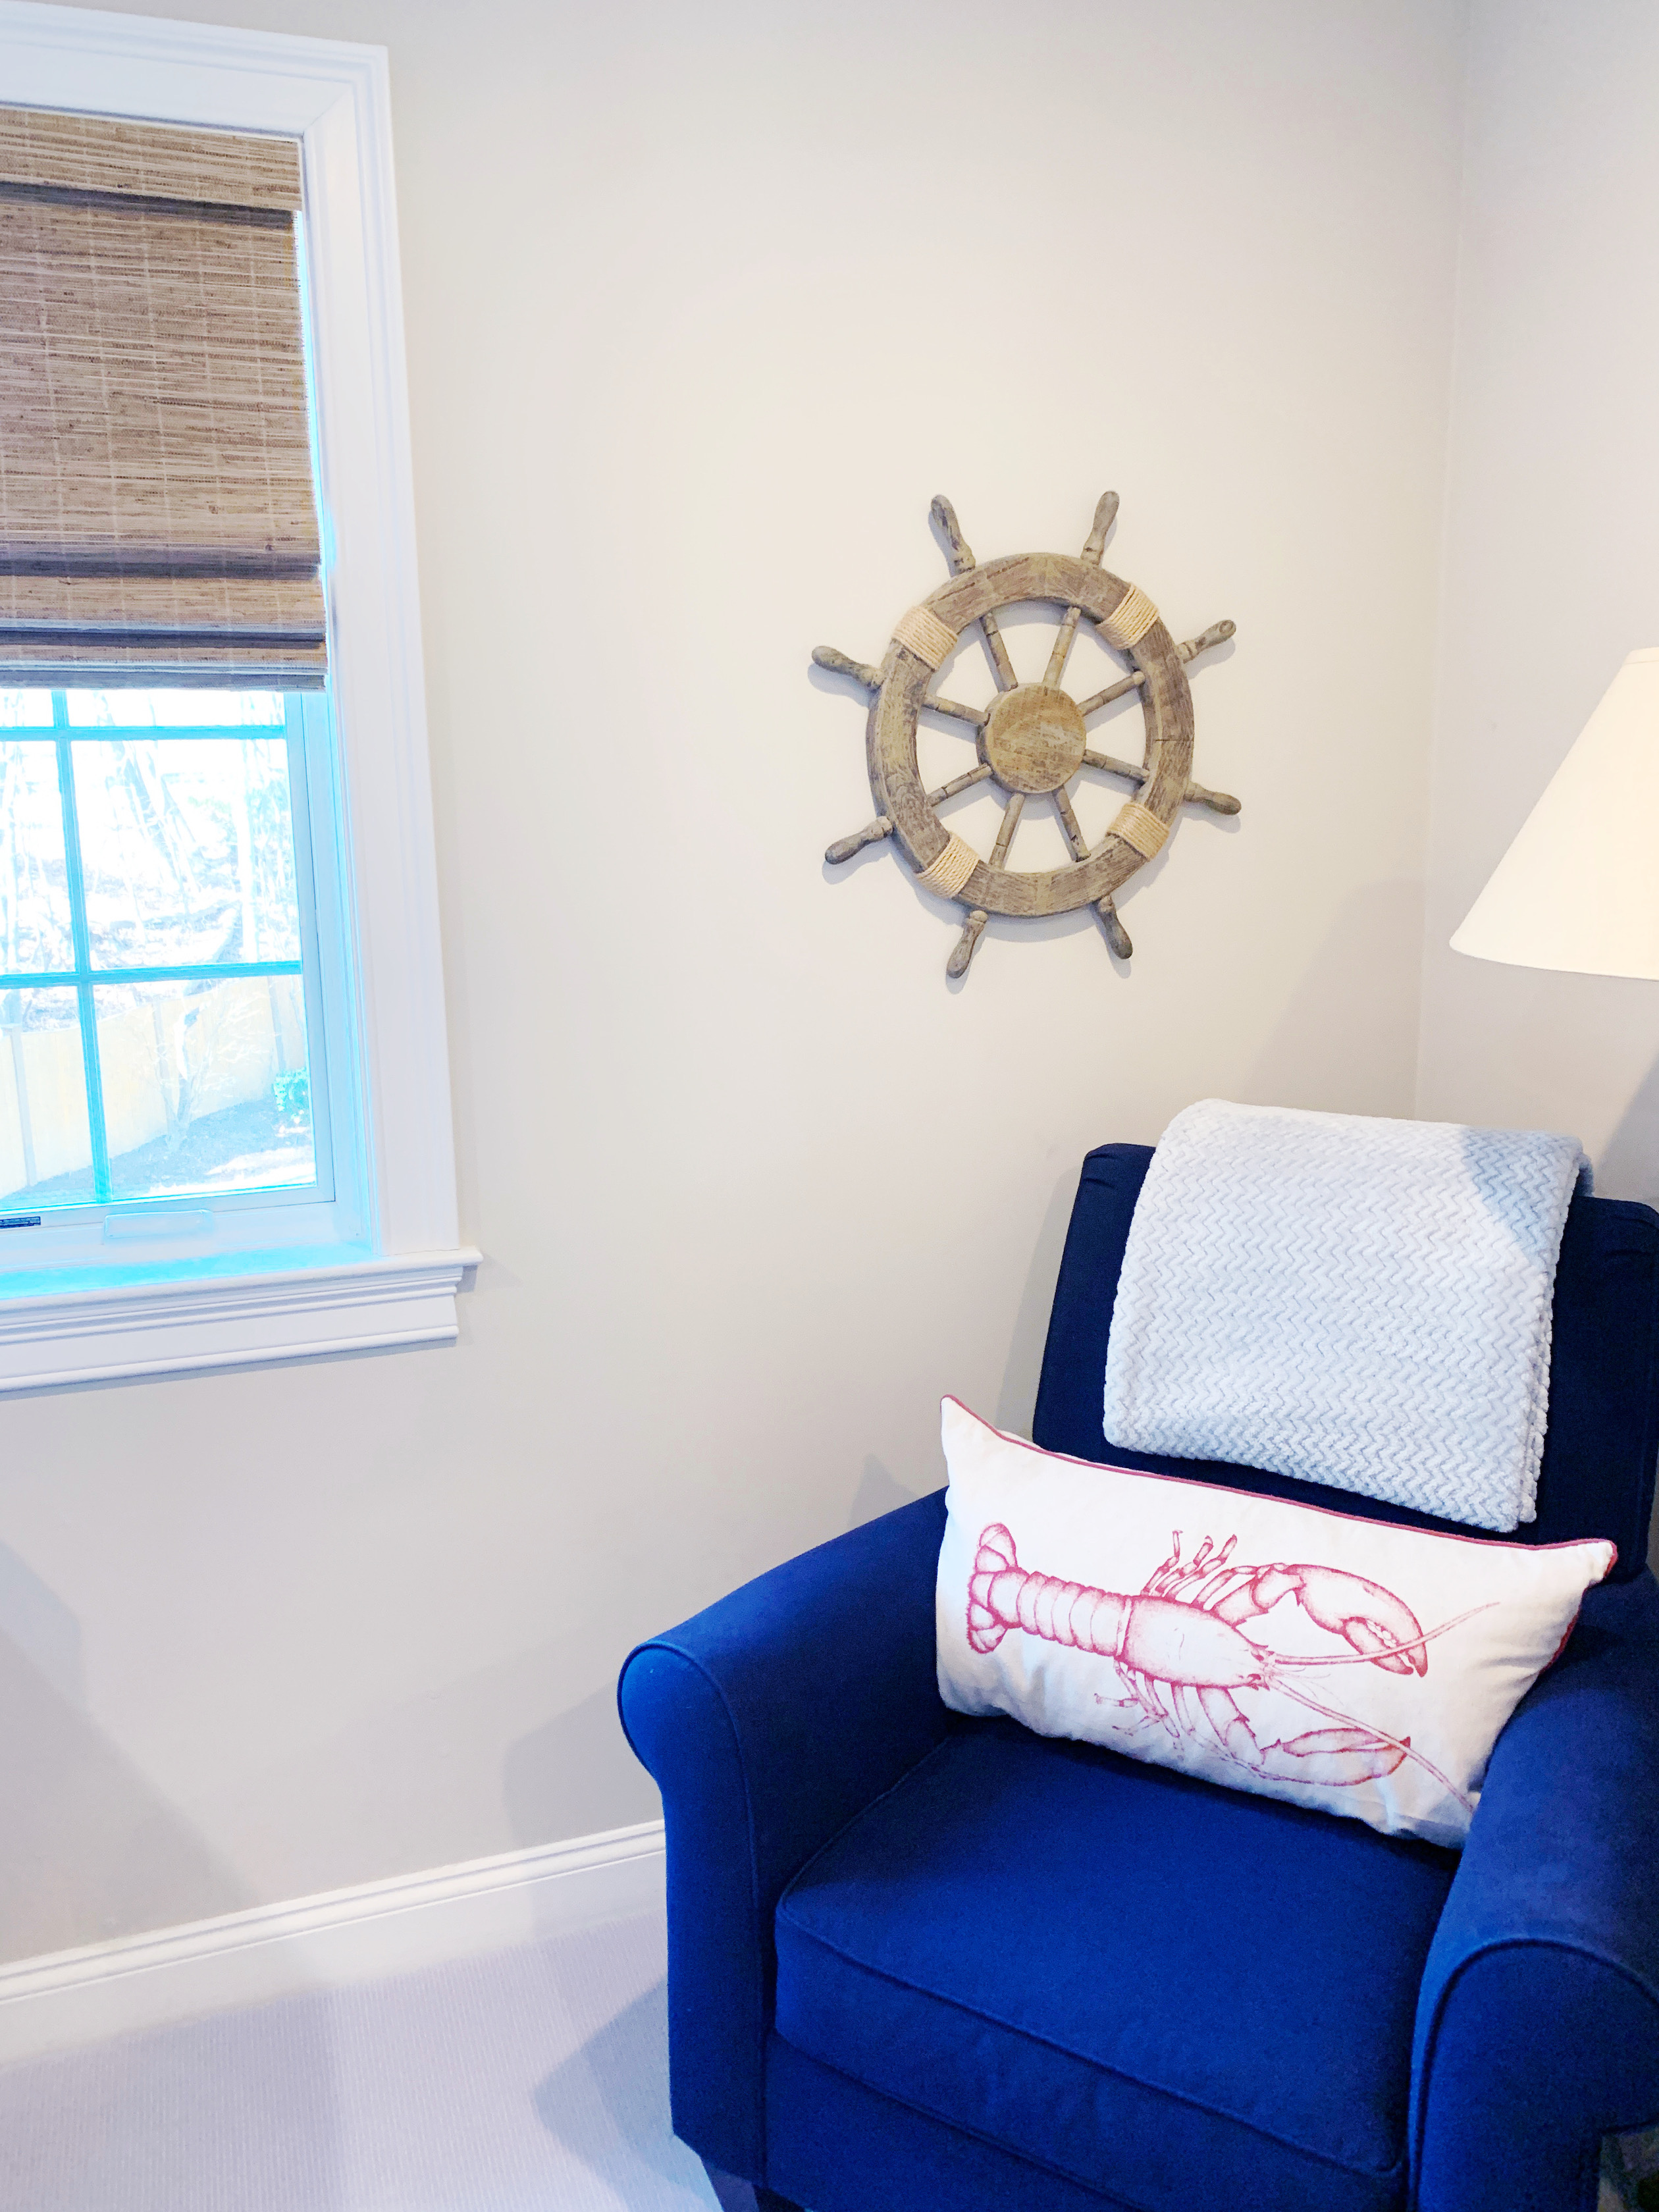 This bedroom is done in a class nautical theme